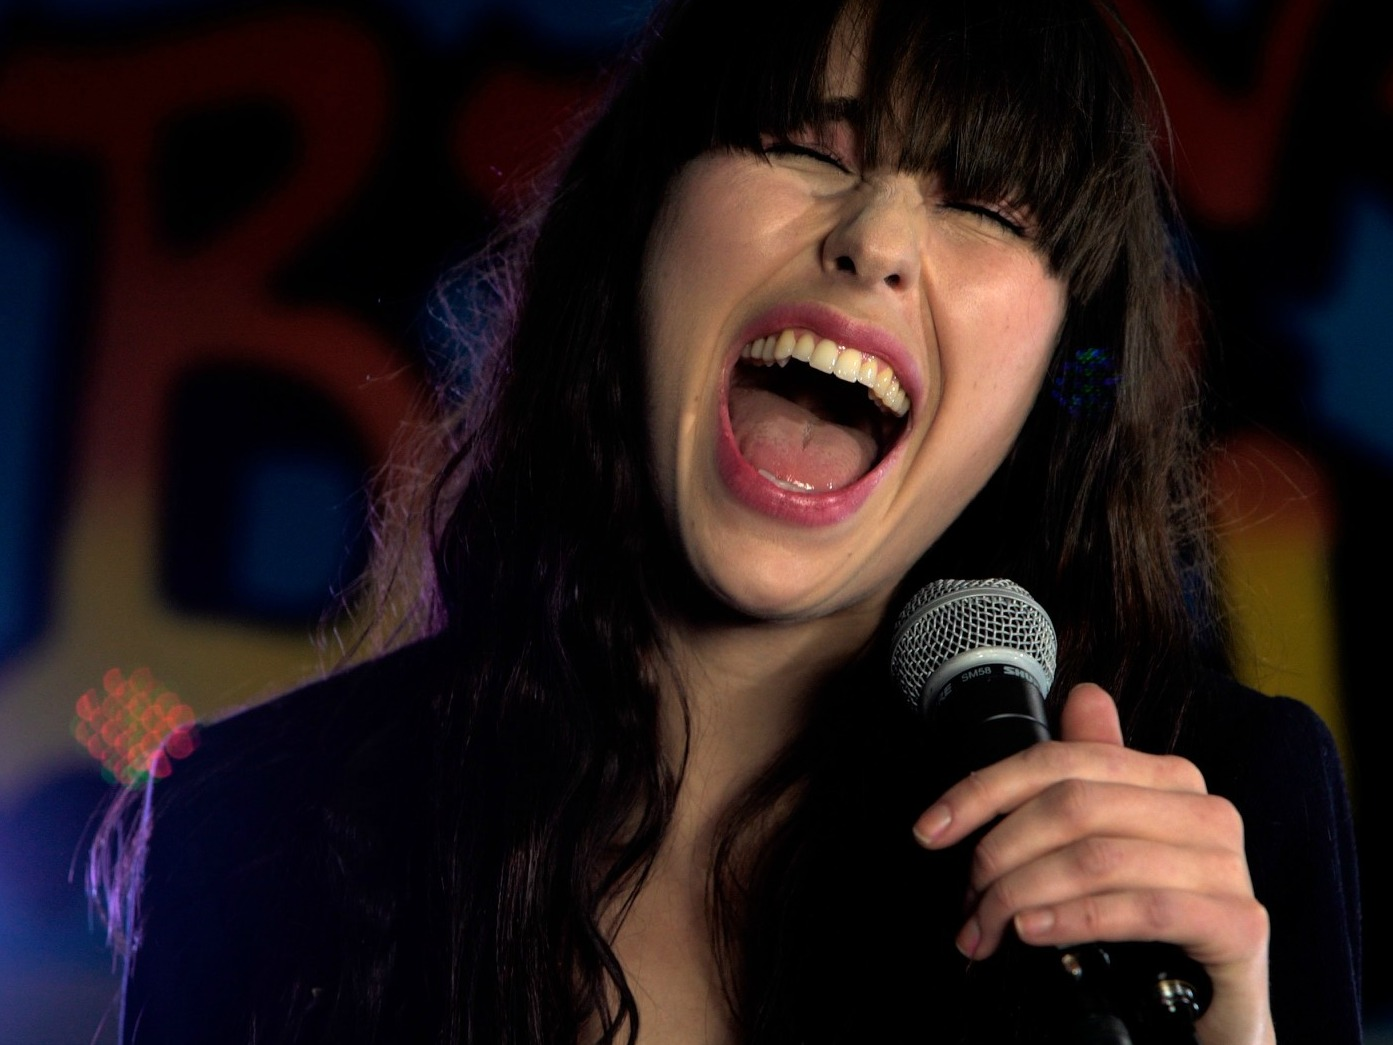 NOW PLAYING: Kimbra's Wickedly Inventive Session